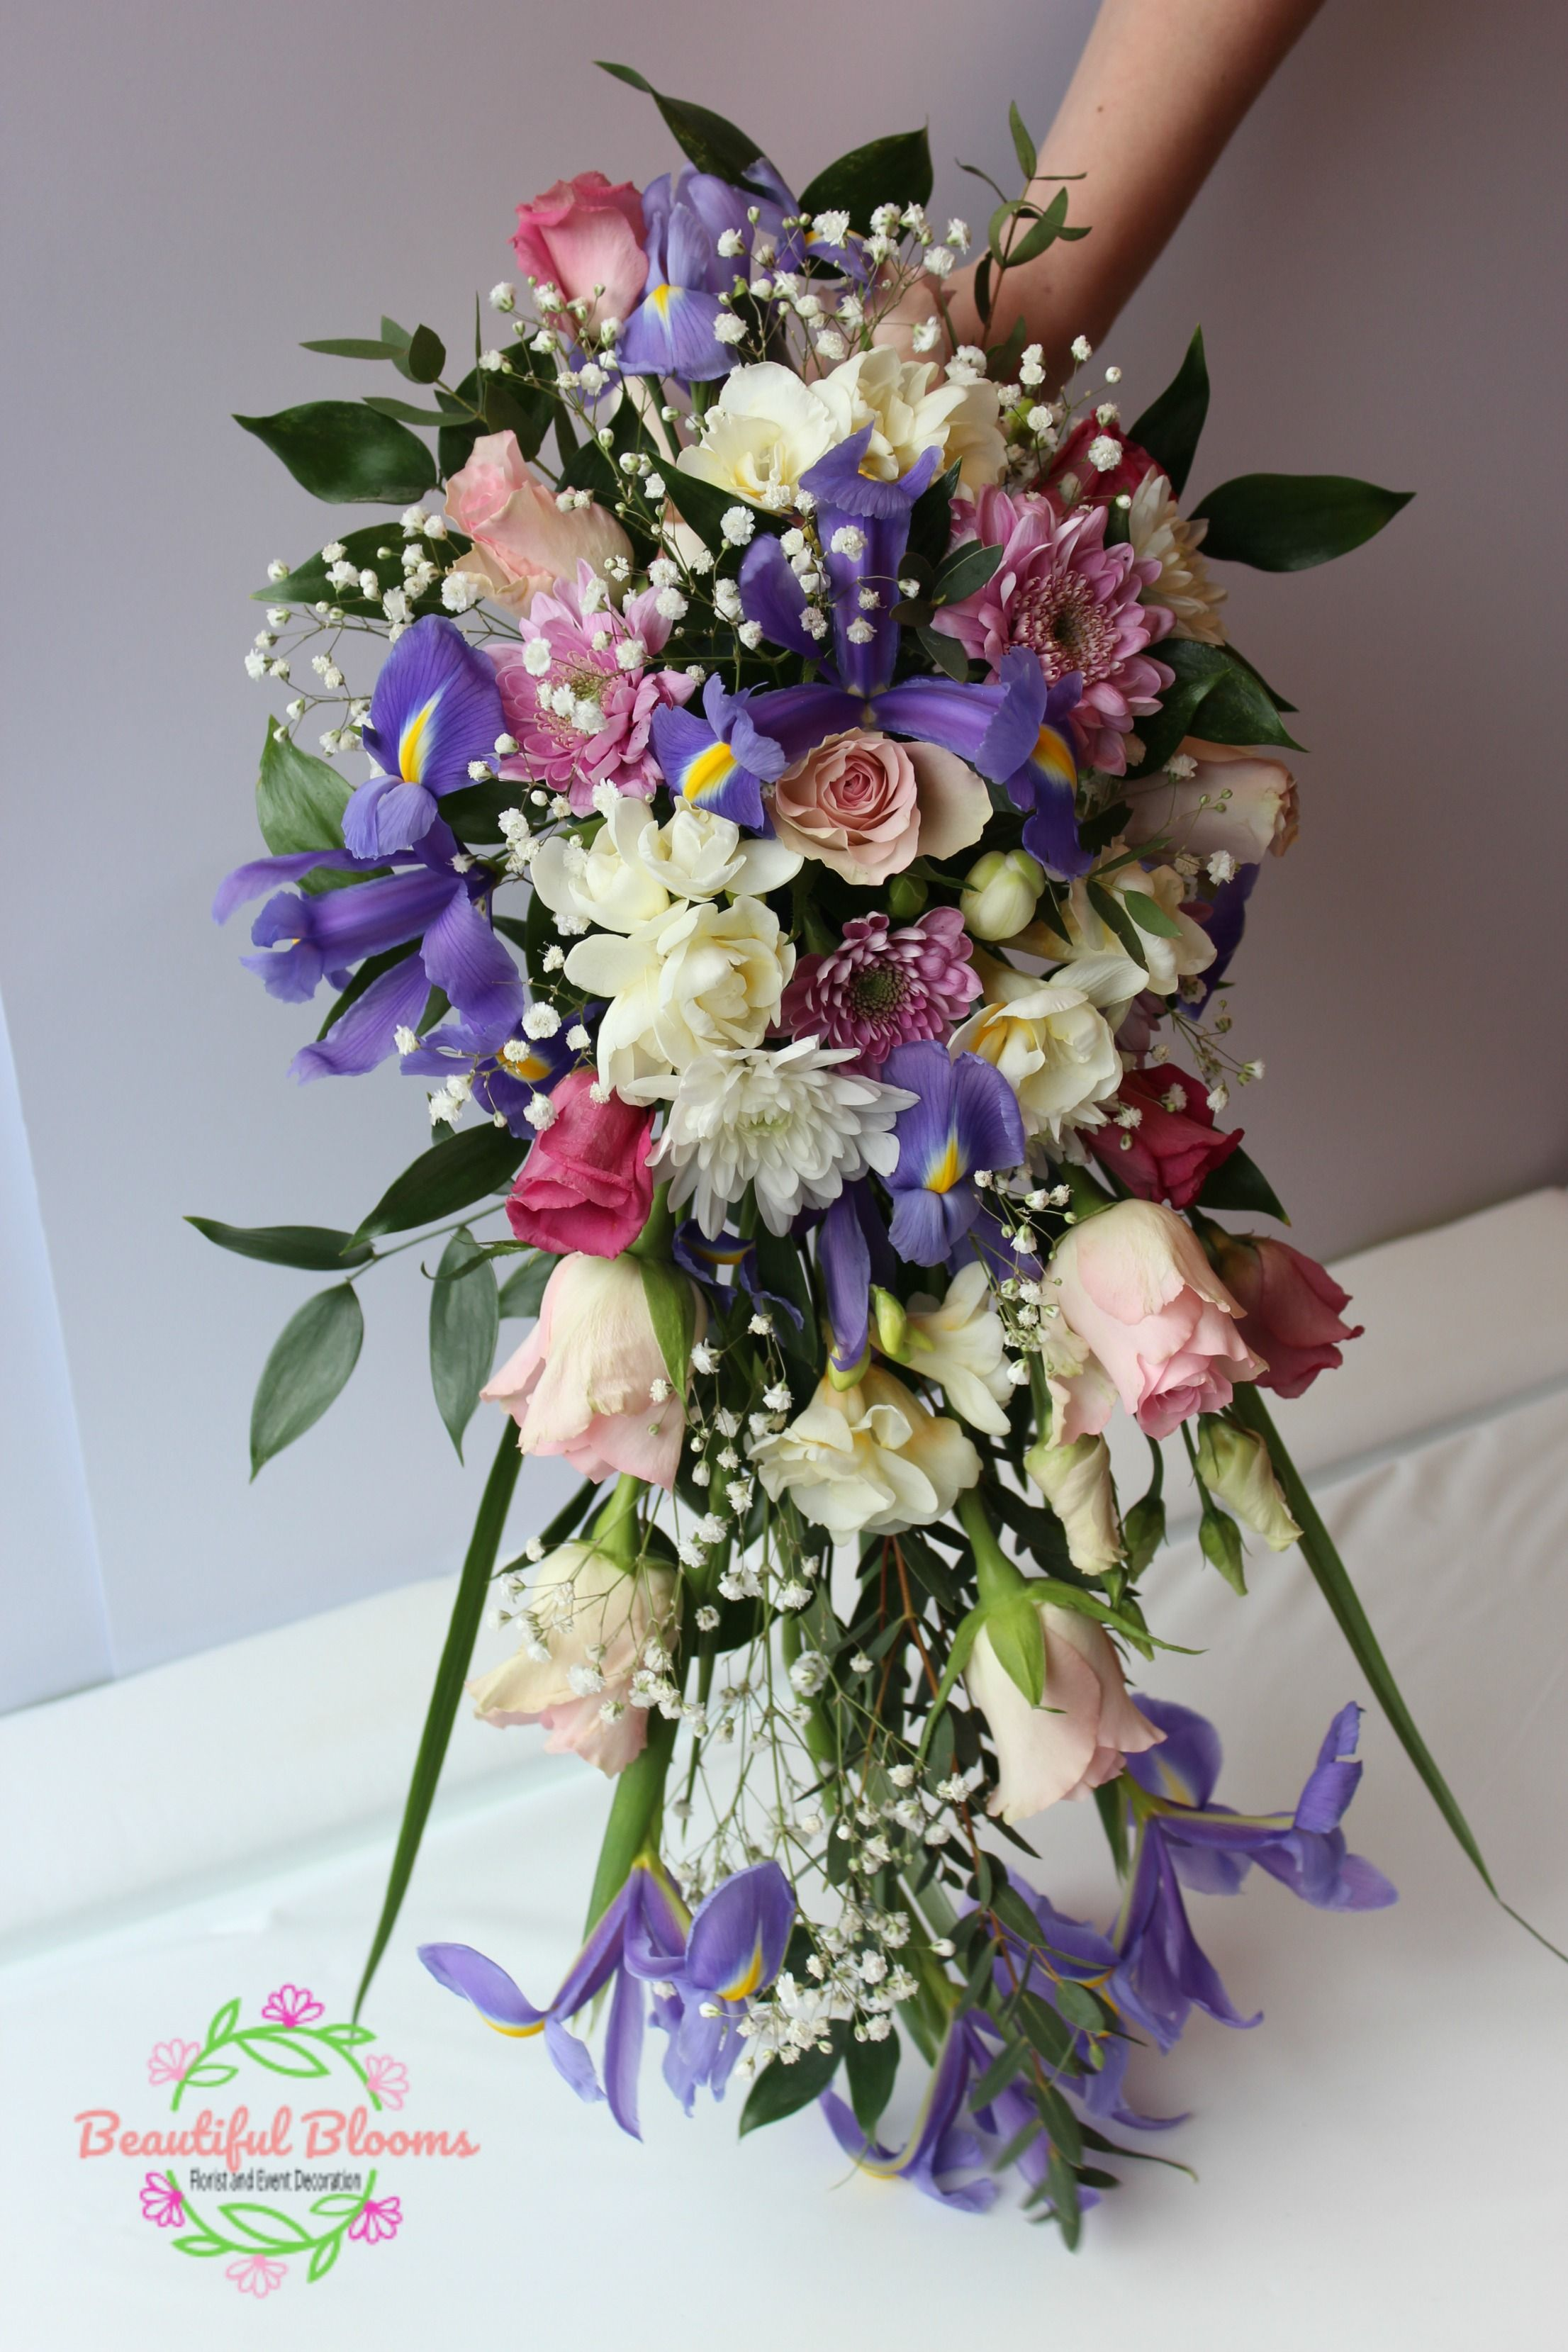 Beautiful cascade bridal bouquet featuring roses and iris in dusky beautiful blooms is a wedding and event florist in swindon creating beautiful wedding flowers and sympathetic funeral flowers izmirmasajfo